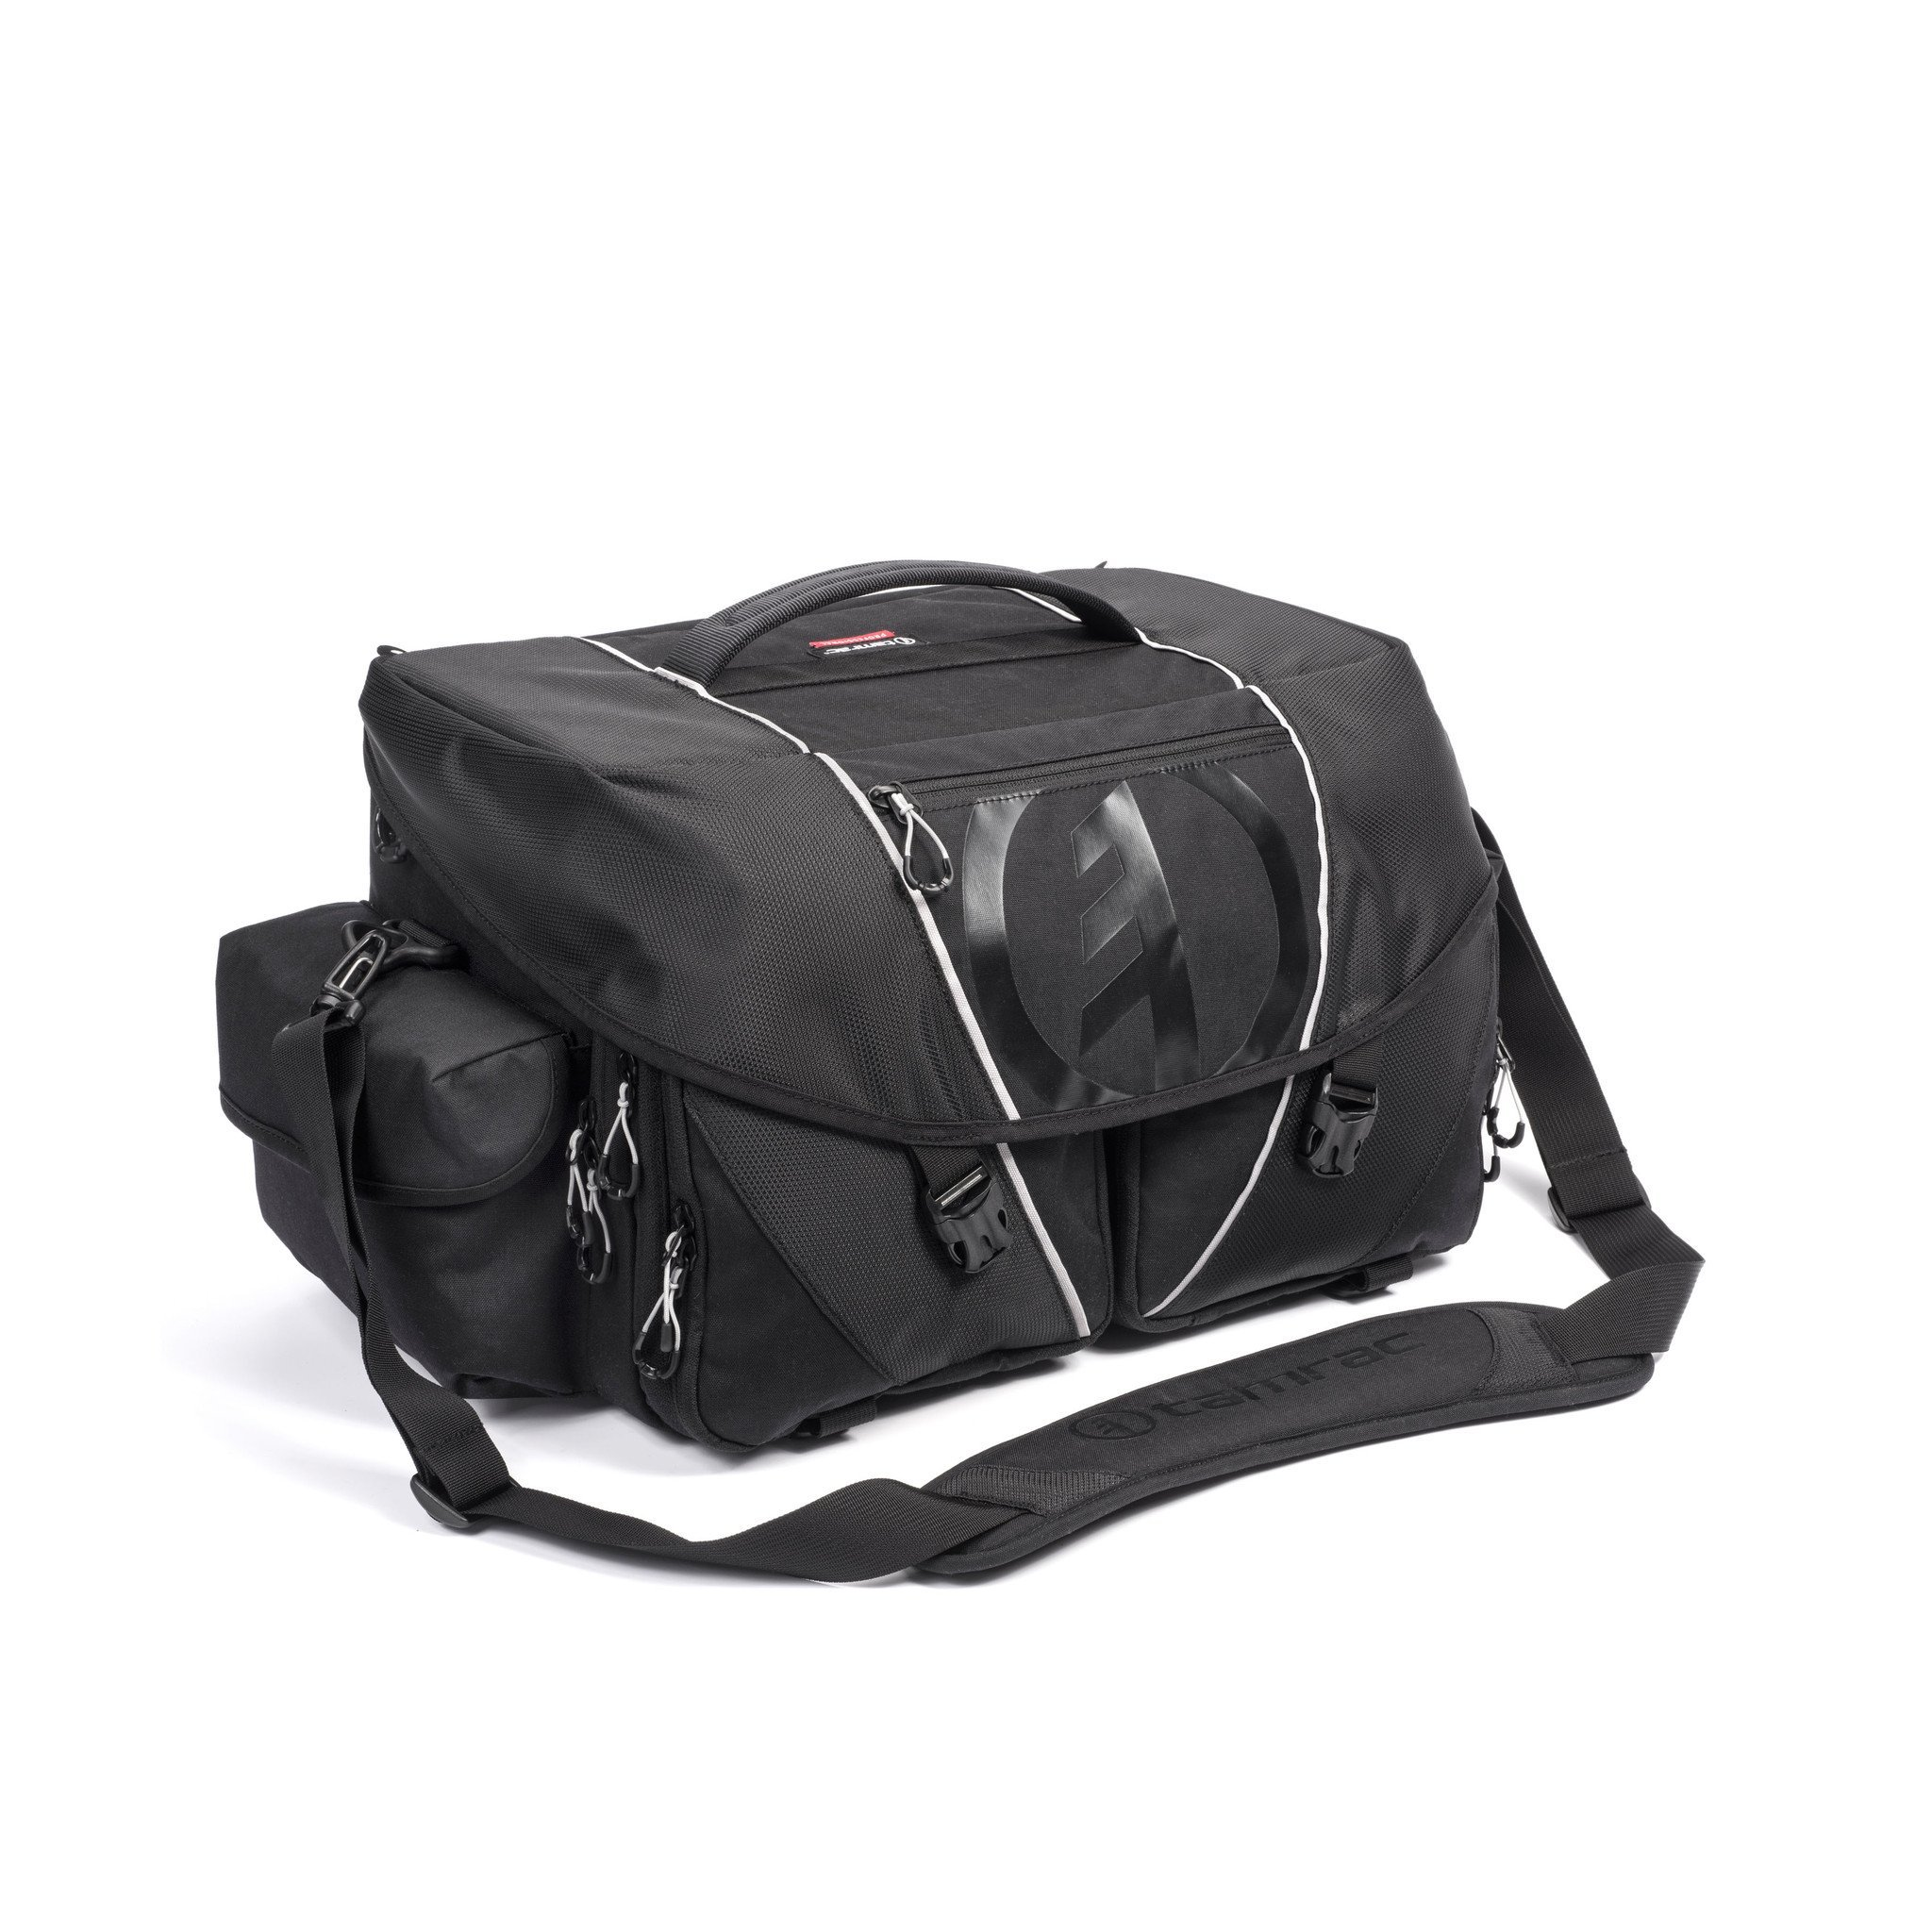 Tamrac Stratus 21 Shoulder Bag